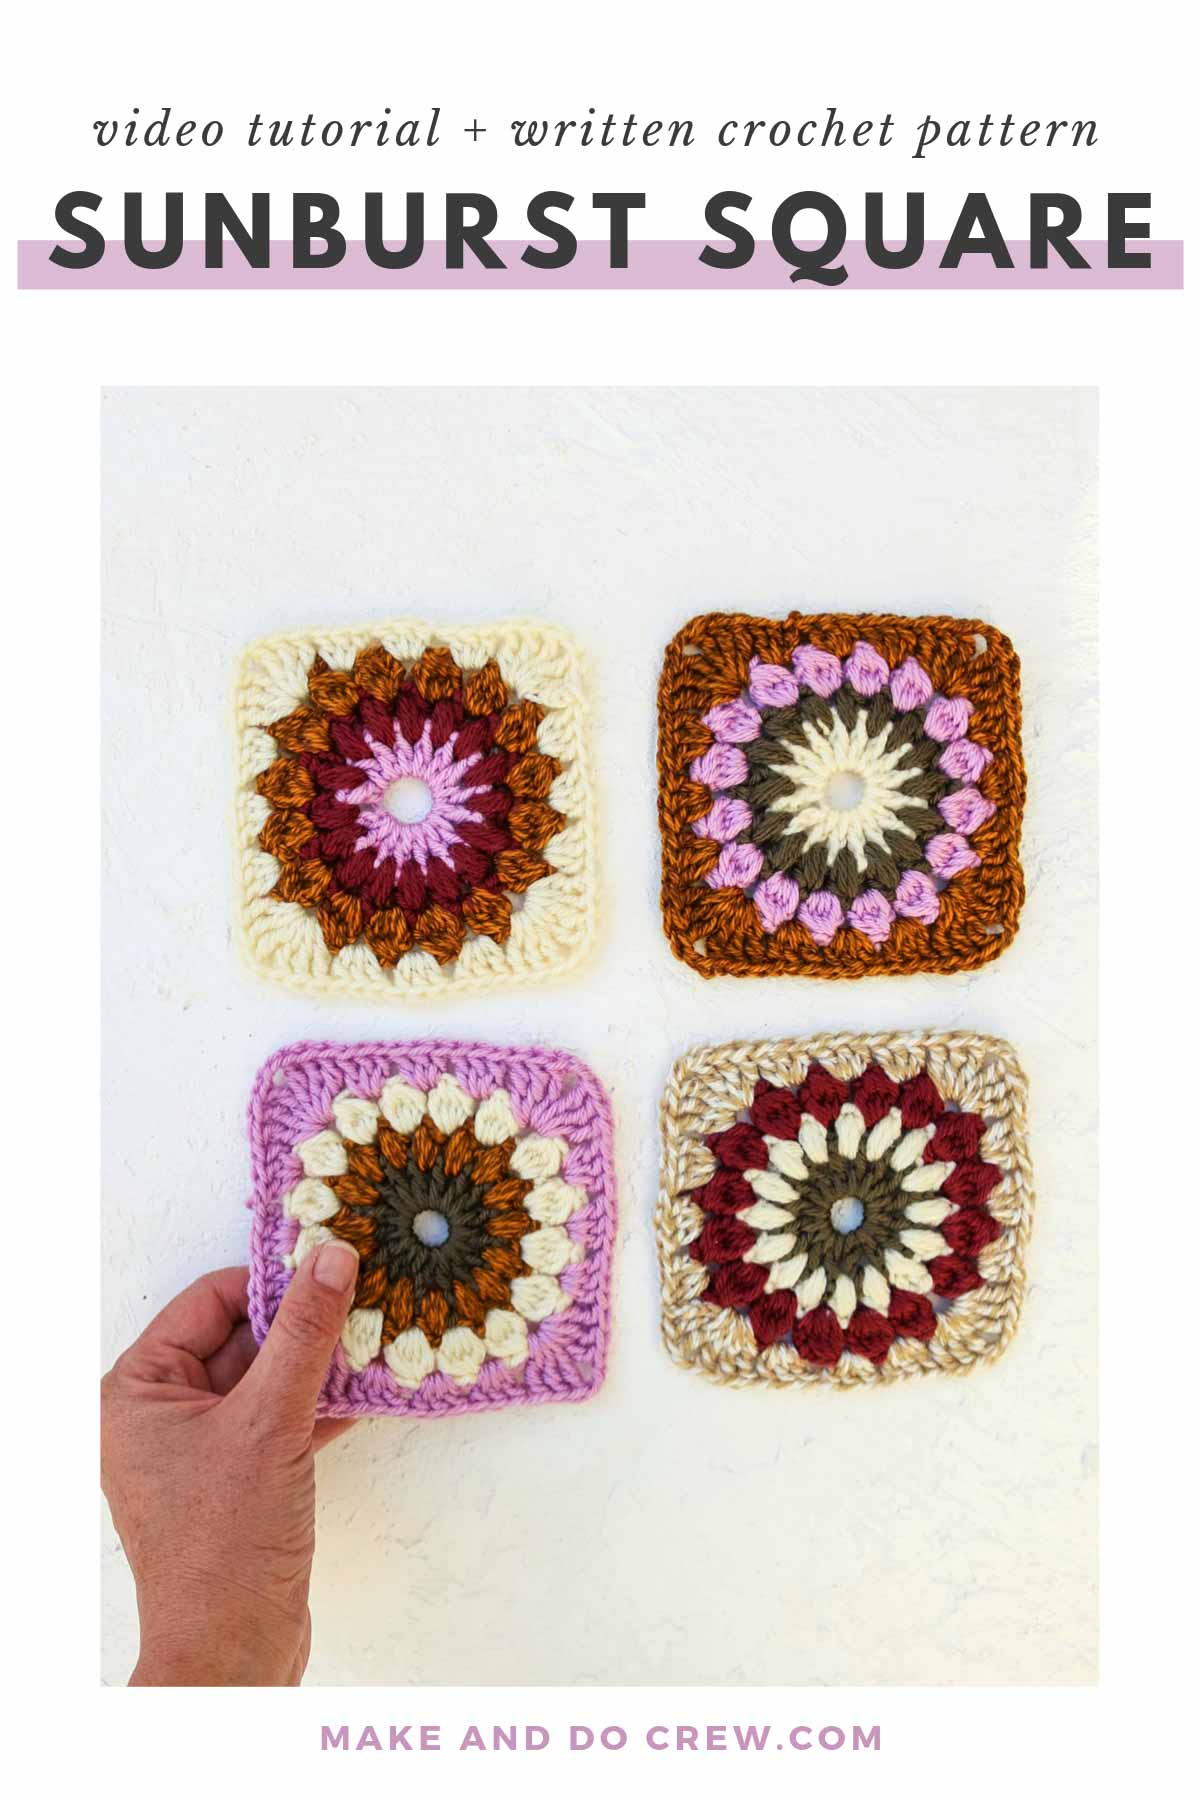 Learn how to make a textured sunburst granny square crochet pattern by following the written instructions and step-by-step video tutorial. This type of crochet granny square is perfect for afghans, jackets, sweaters and baby projects!